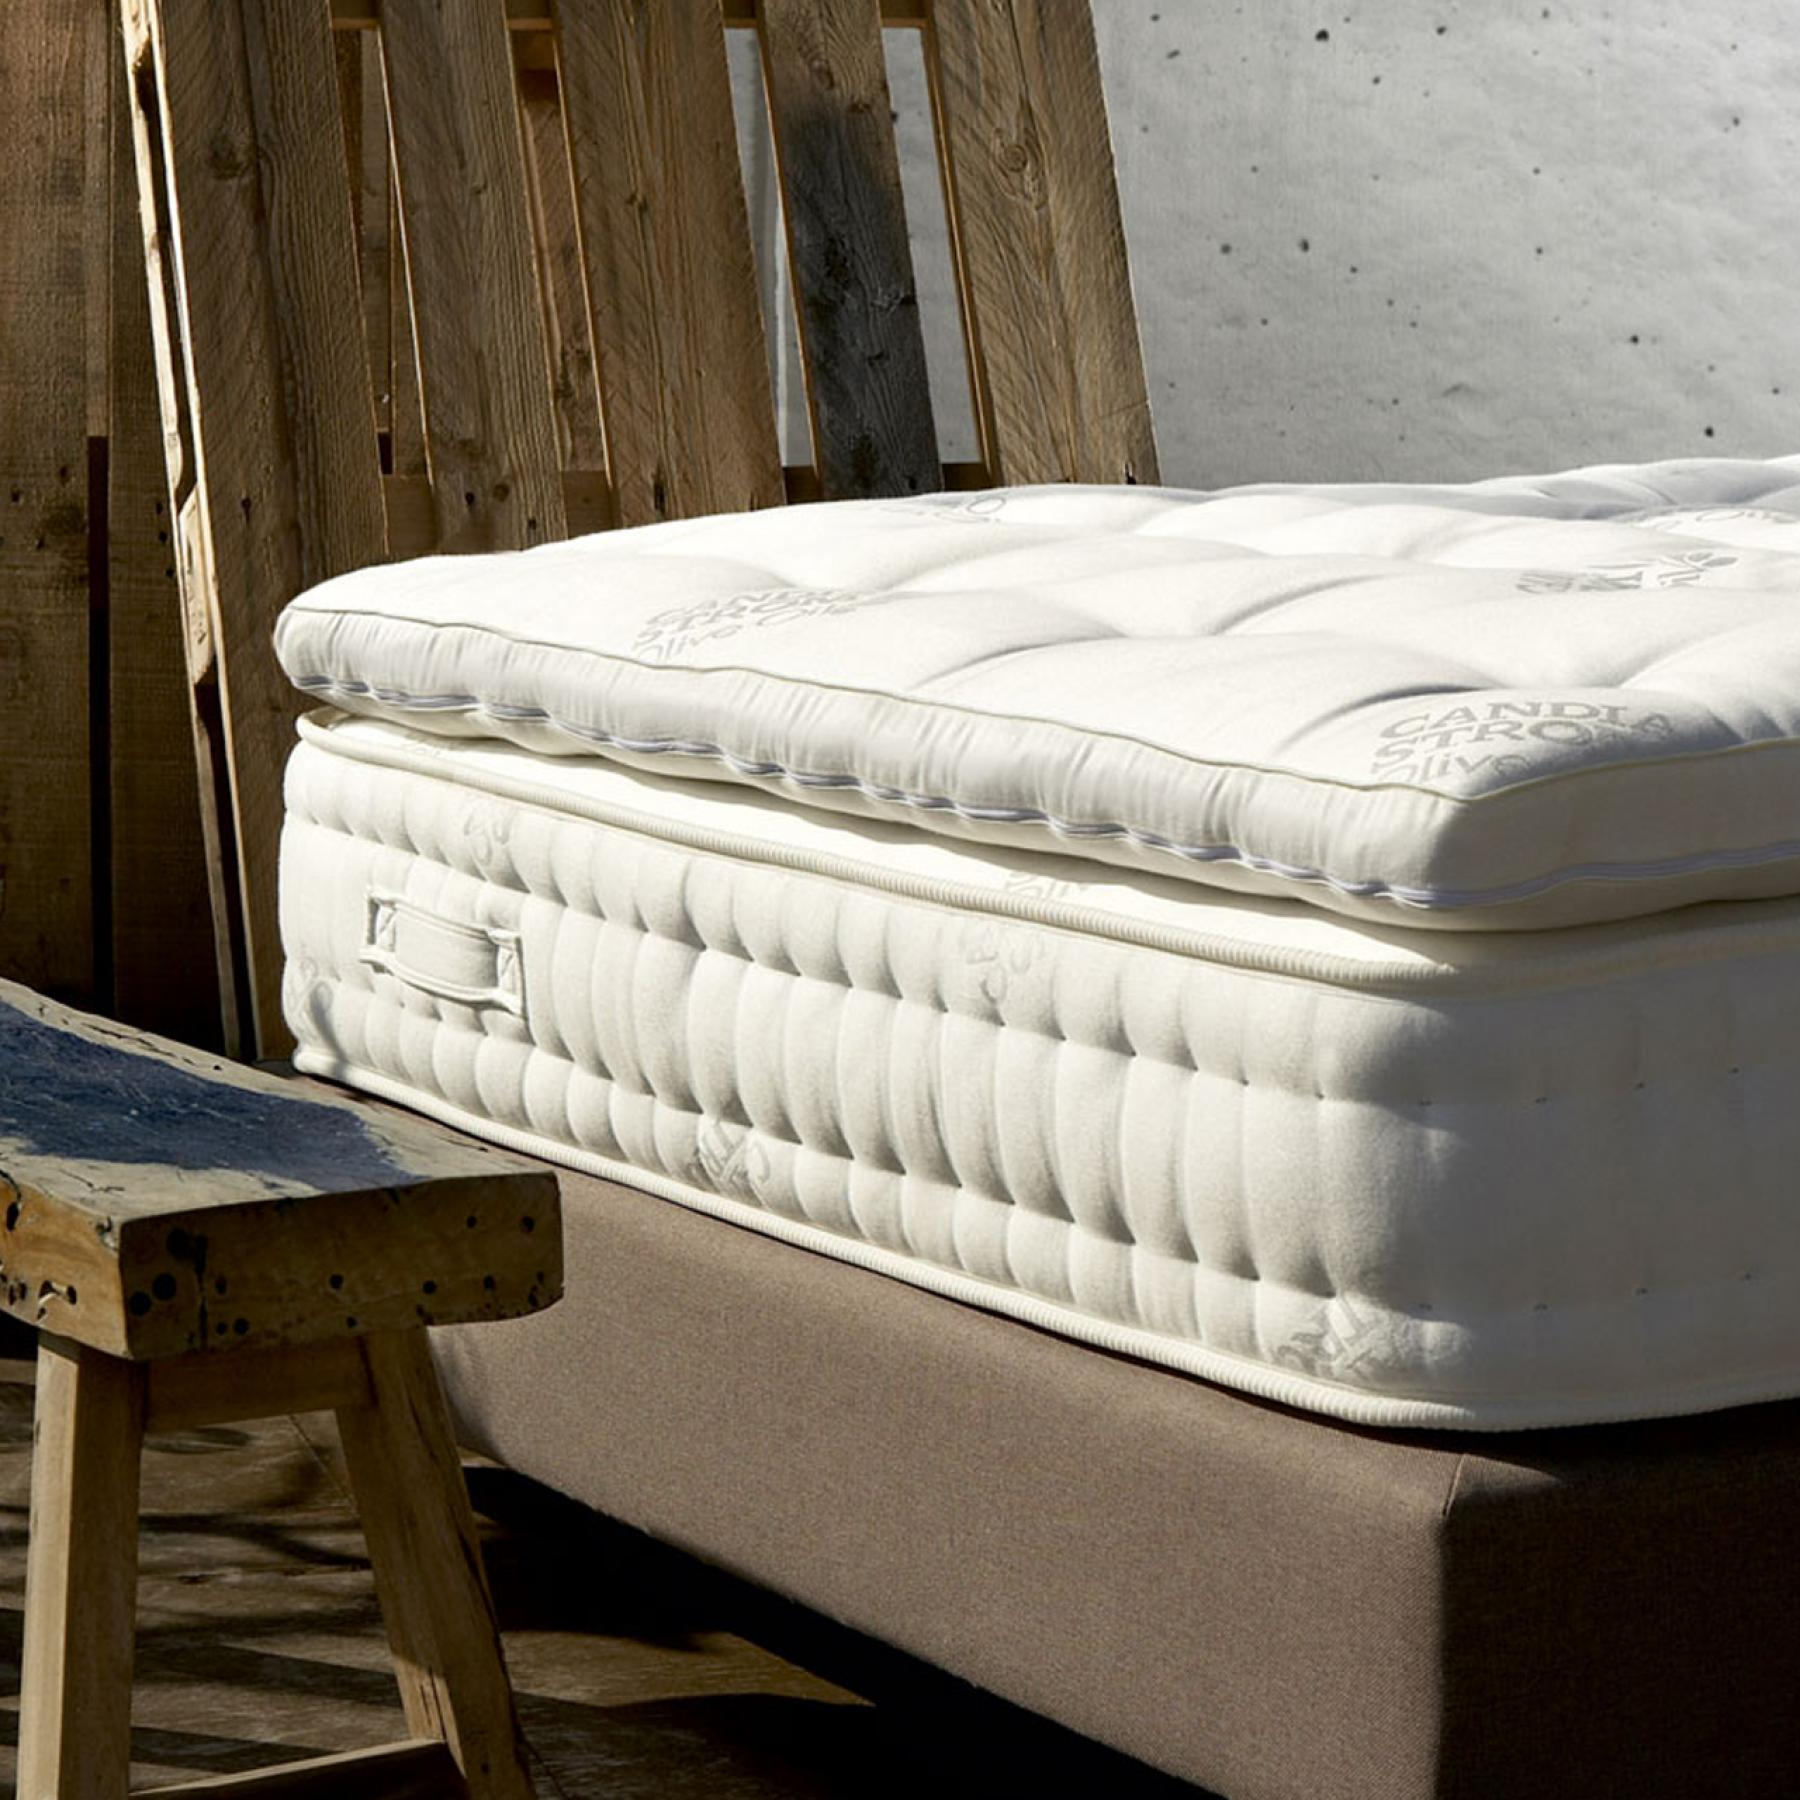 TOP MATTRESS MAINTENANCE INSTRUCTIONS